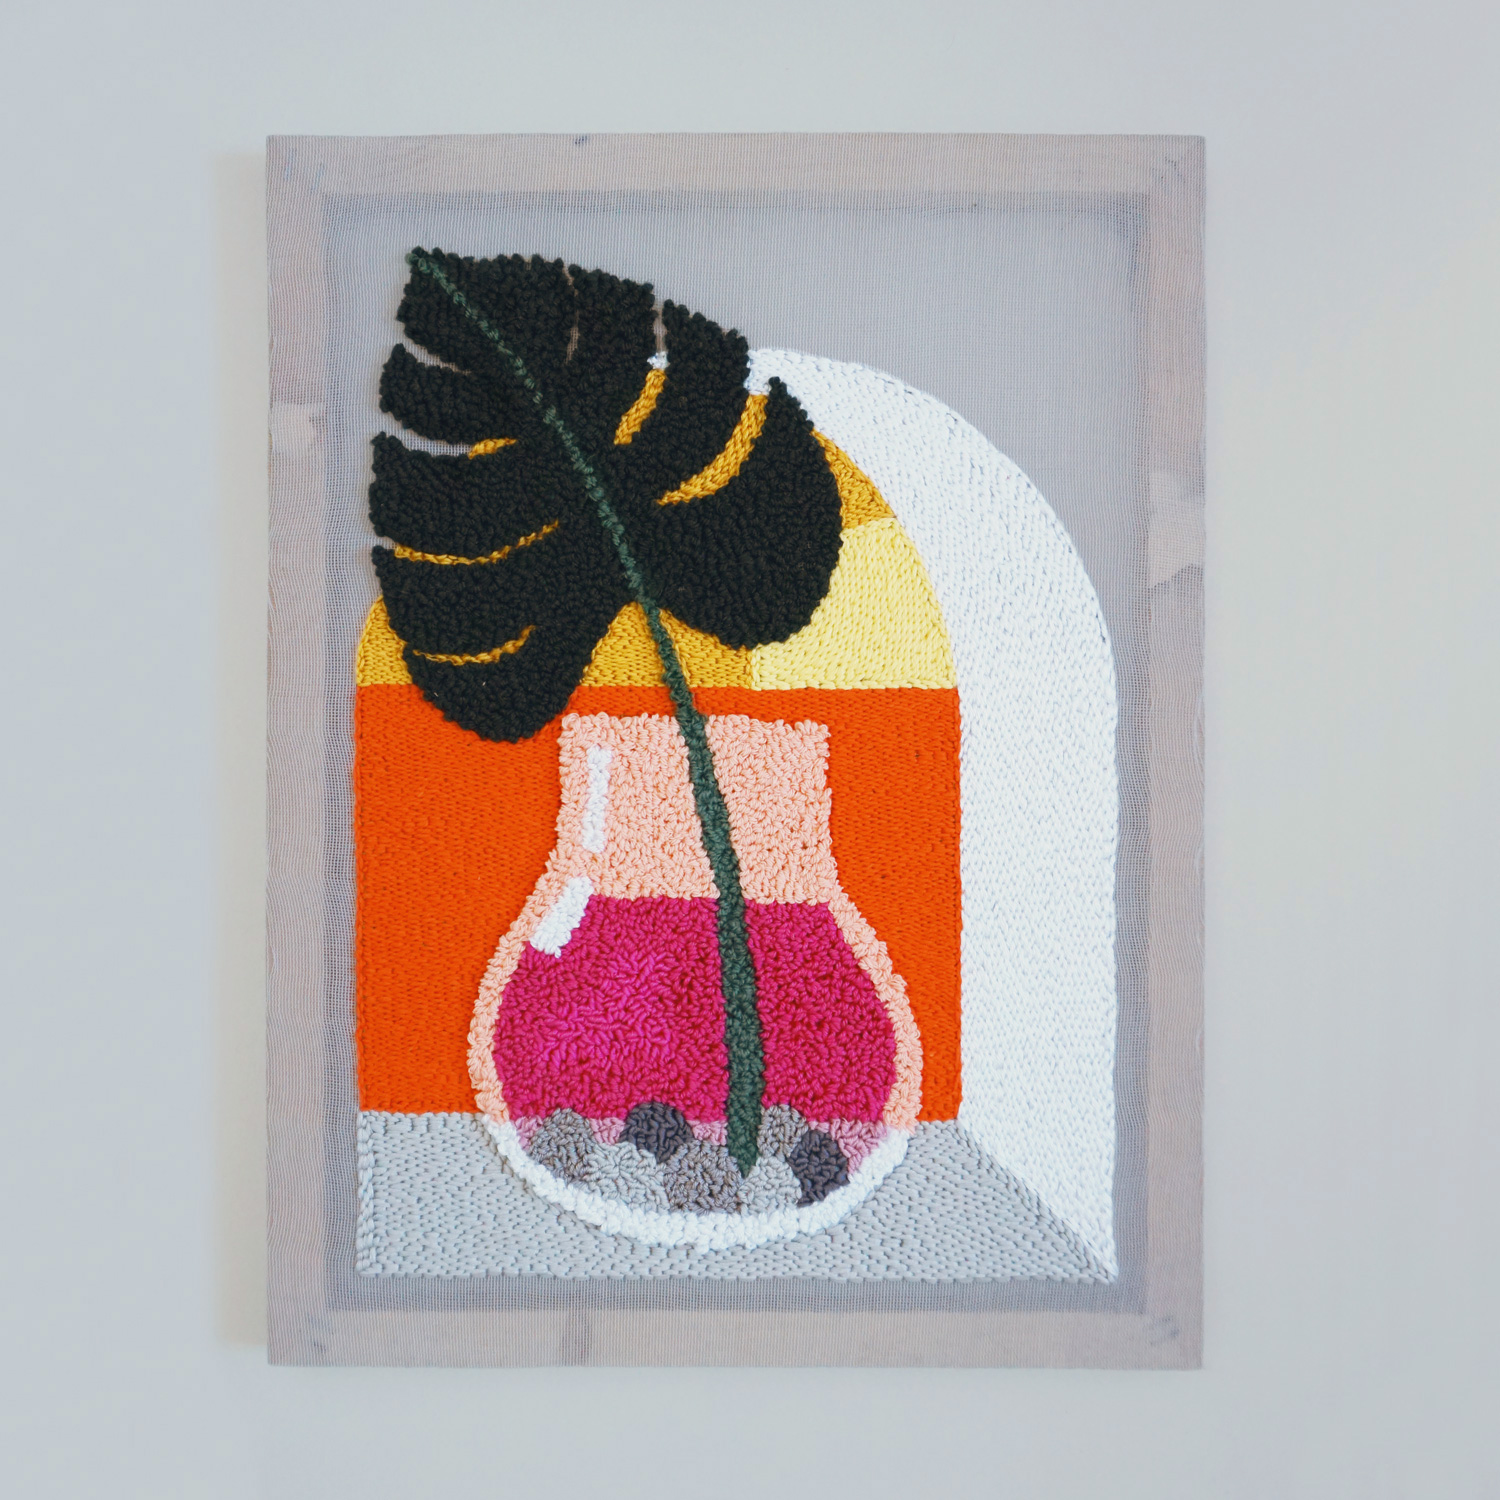 A pair of punch needle art works with a sunset view through arched windows, made on semi-translucent fabric.